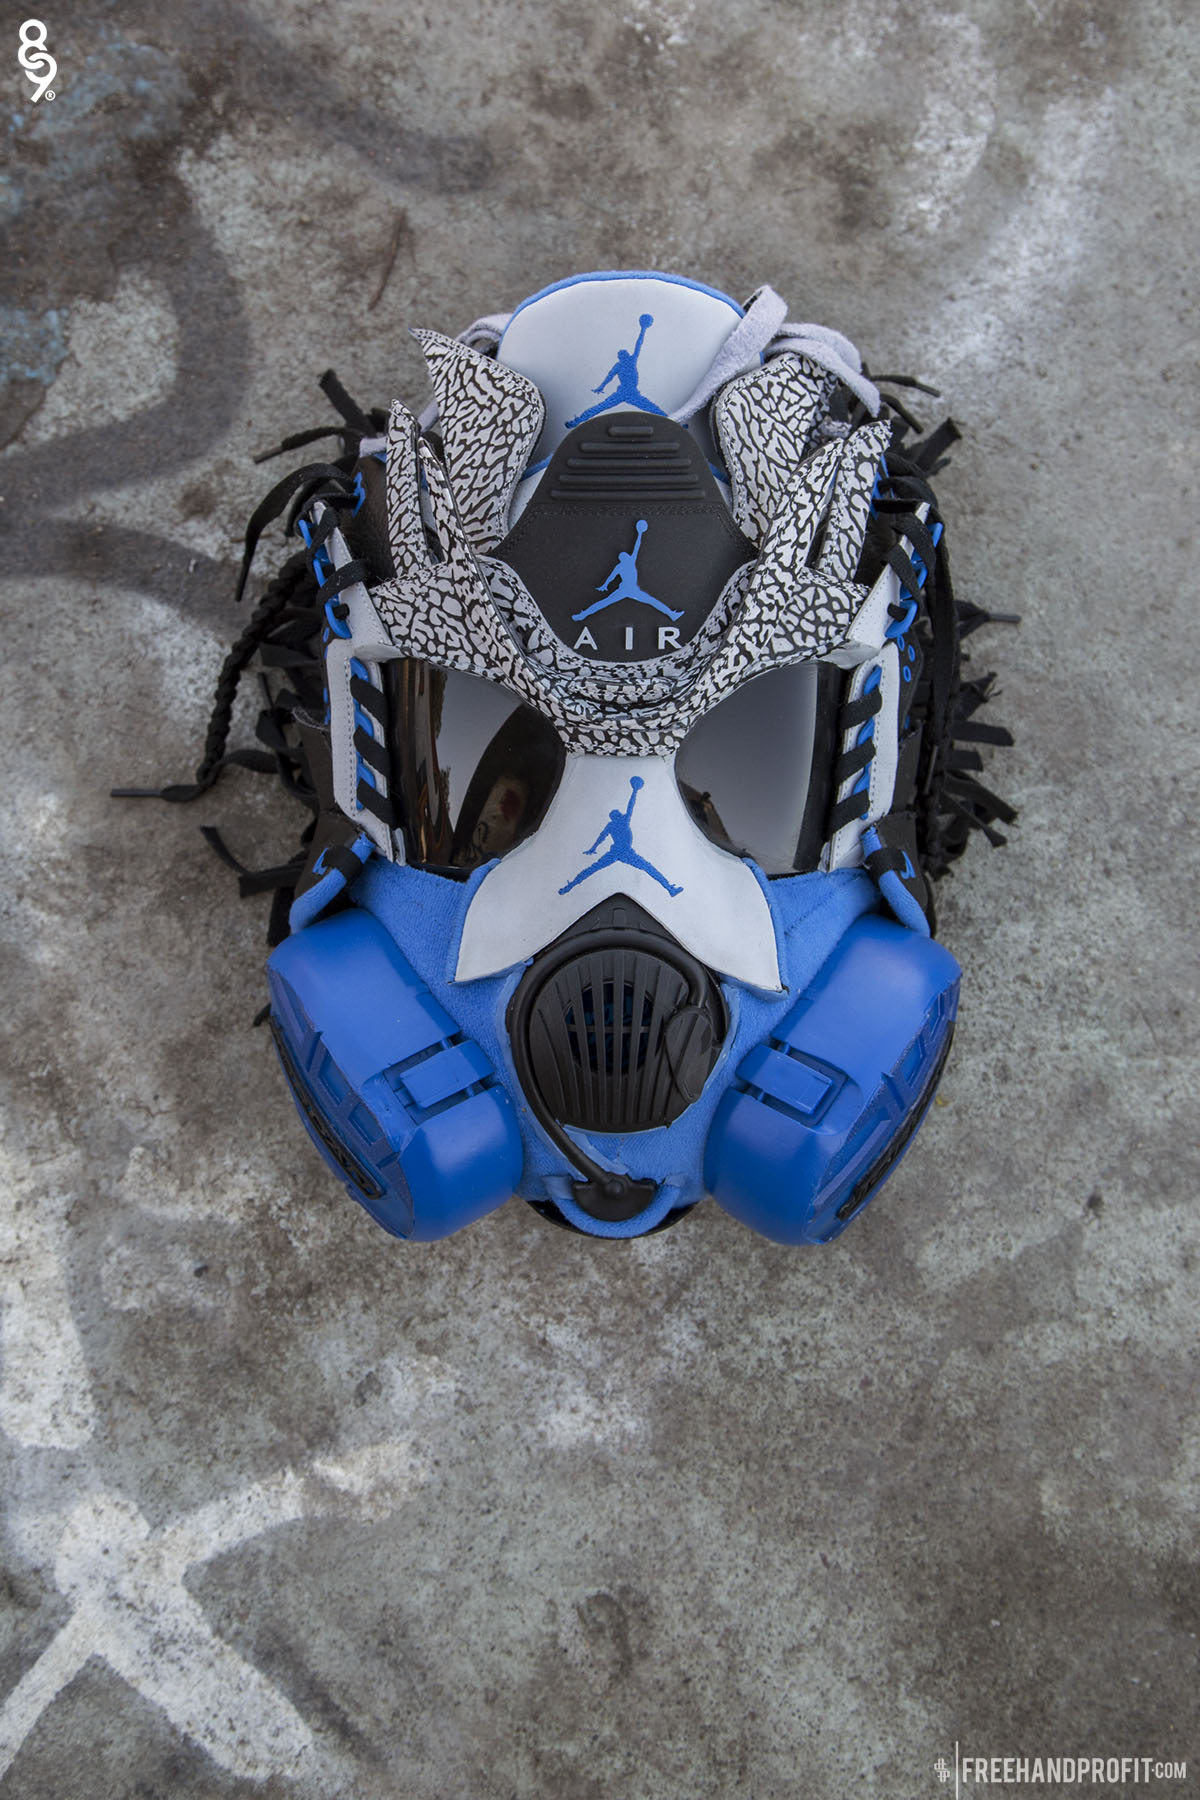 Freehand profit no125 sport blue iii gas mask voltagebd Image collections